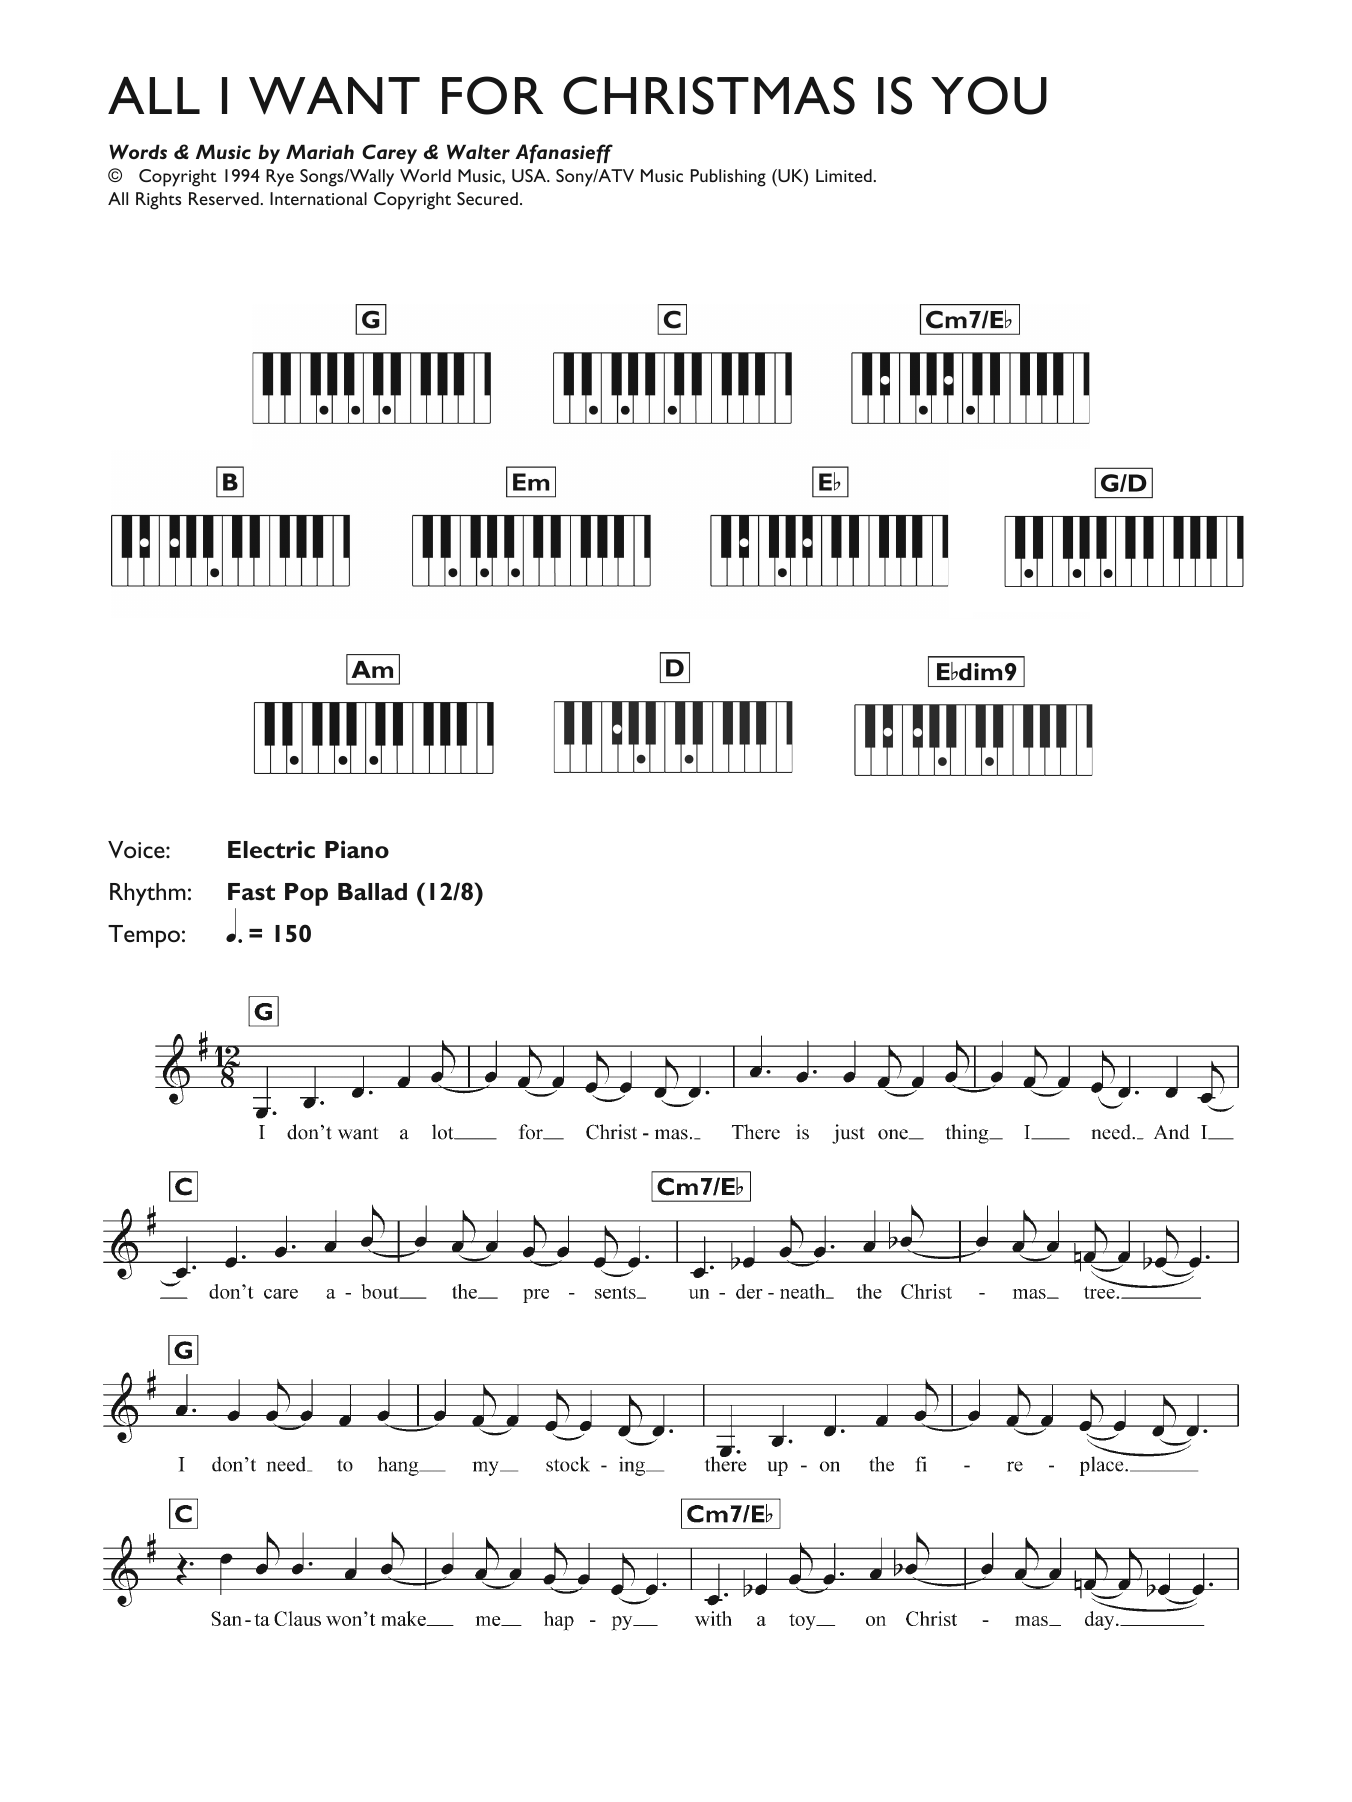 All I Want For Christmas Is You Sheet Music Pdf.All I Want For Christmas Is You Sheet Music Mariah Carey